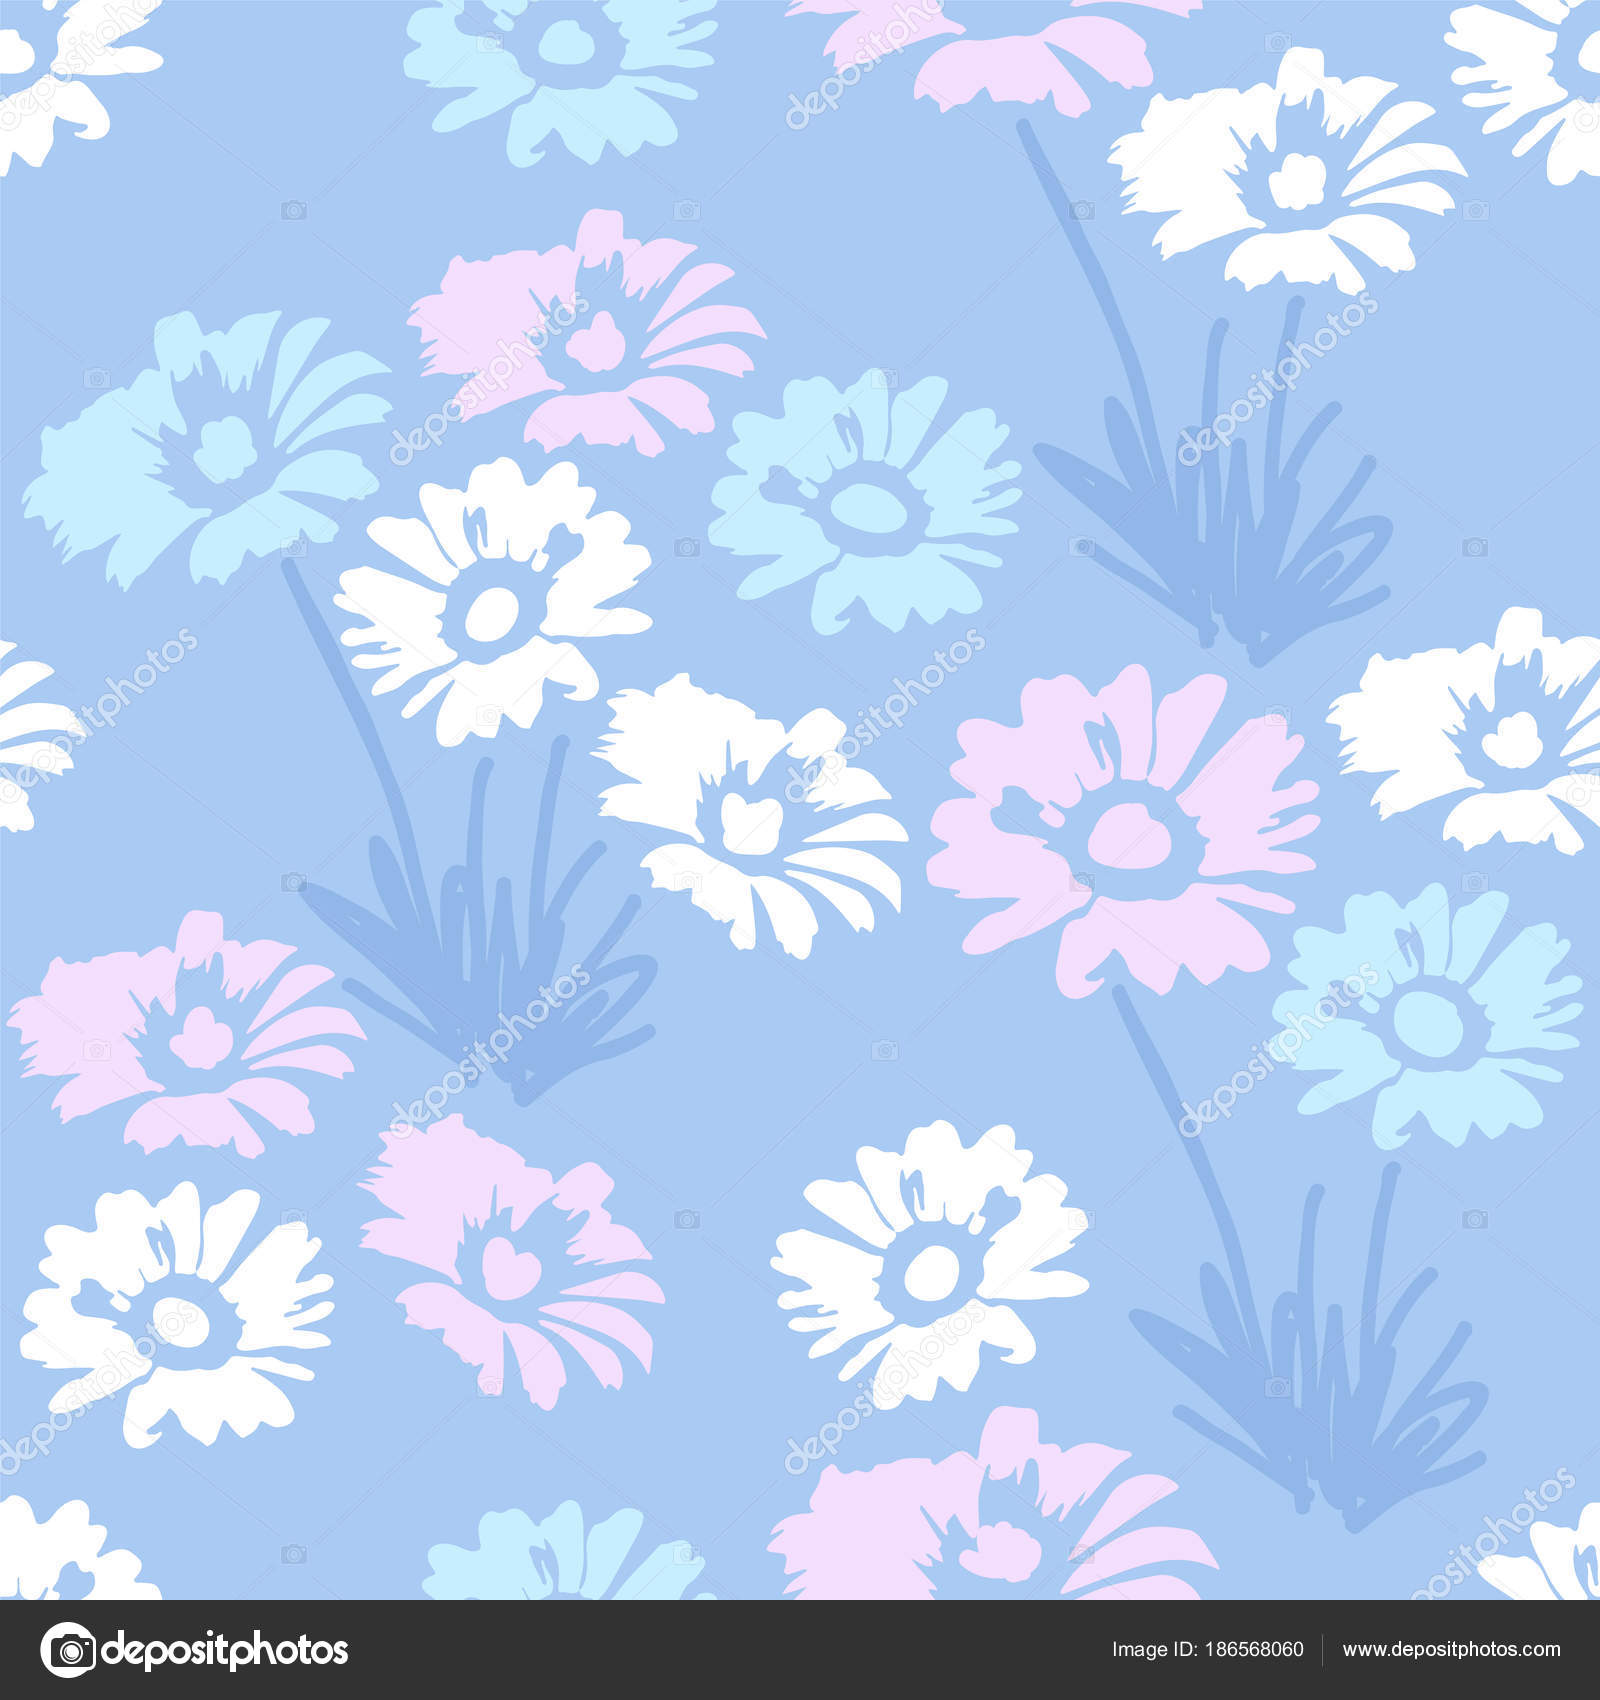 Vector Seamless Floral Pattern With Daisy Flowers Stock Vector